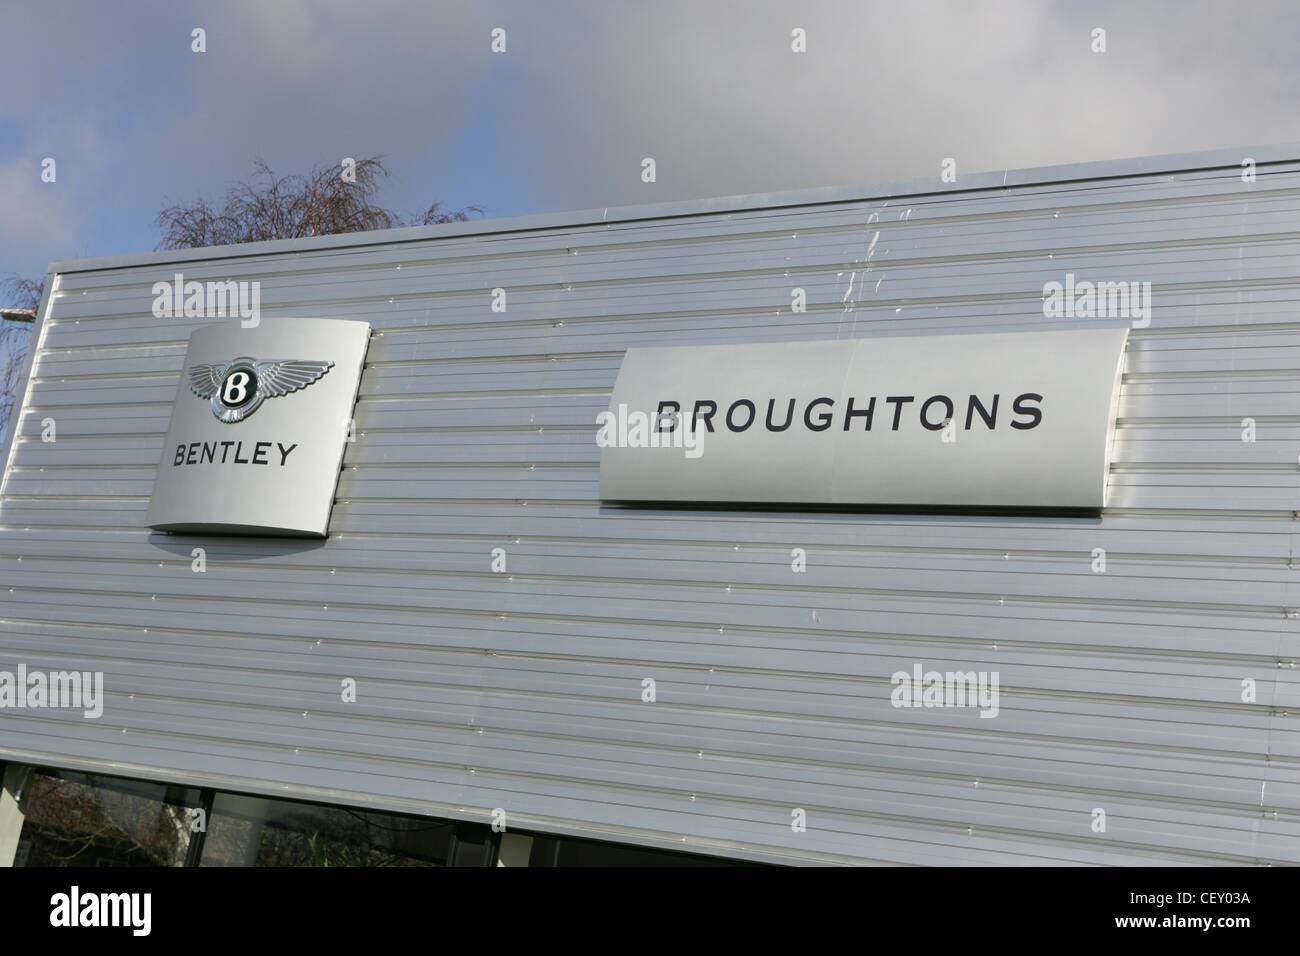 Broughtons Bentley Autohaus, Cheltenham uk Stockbild